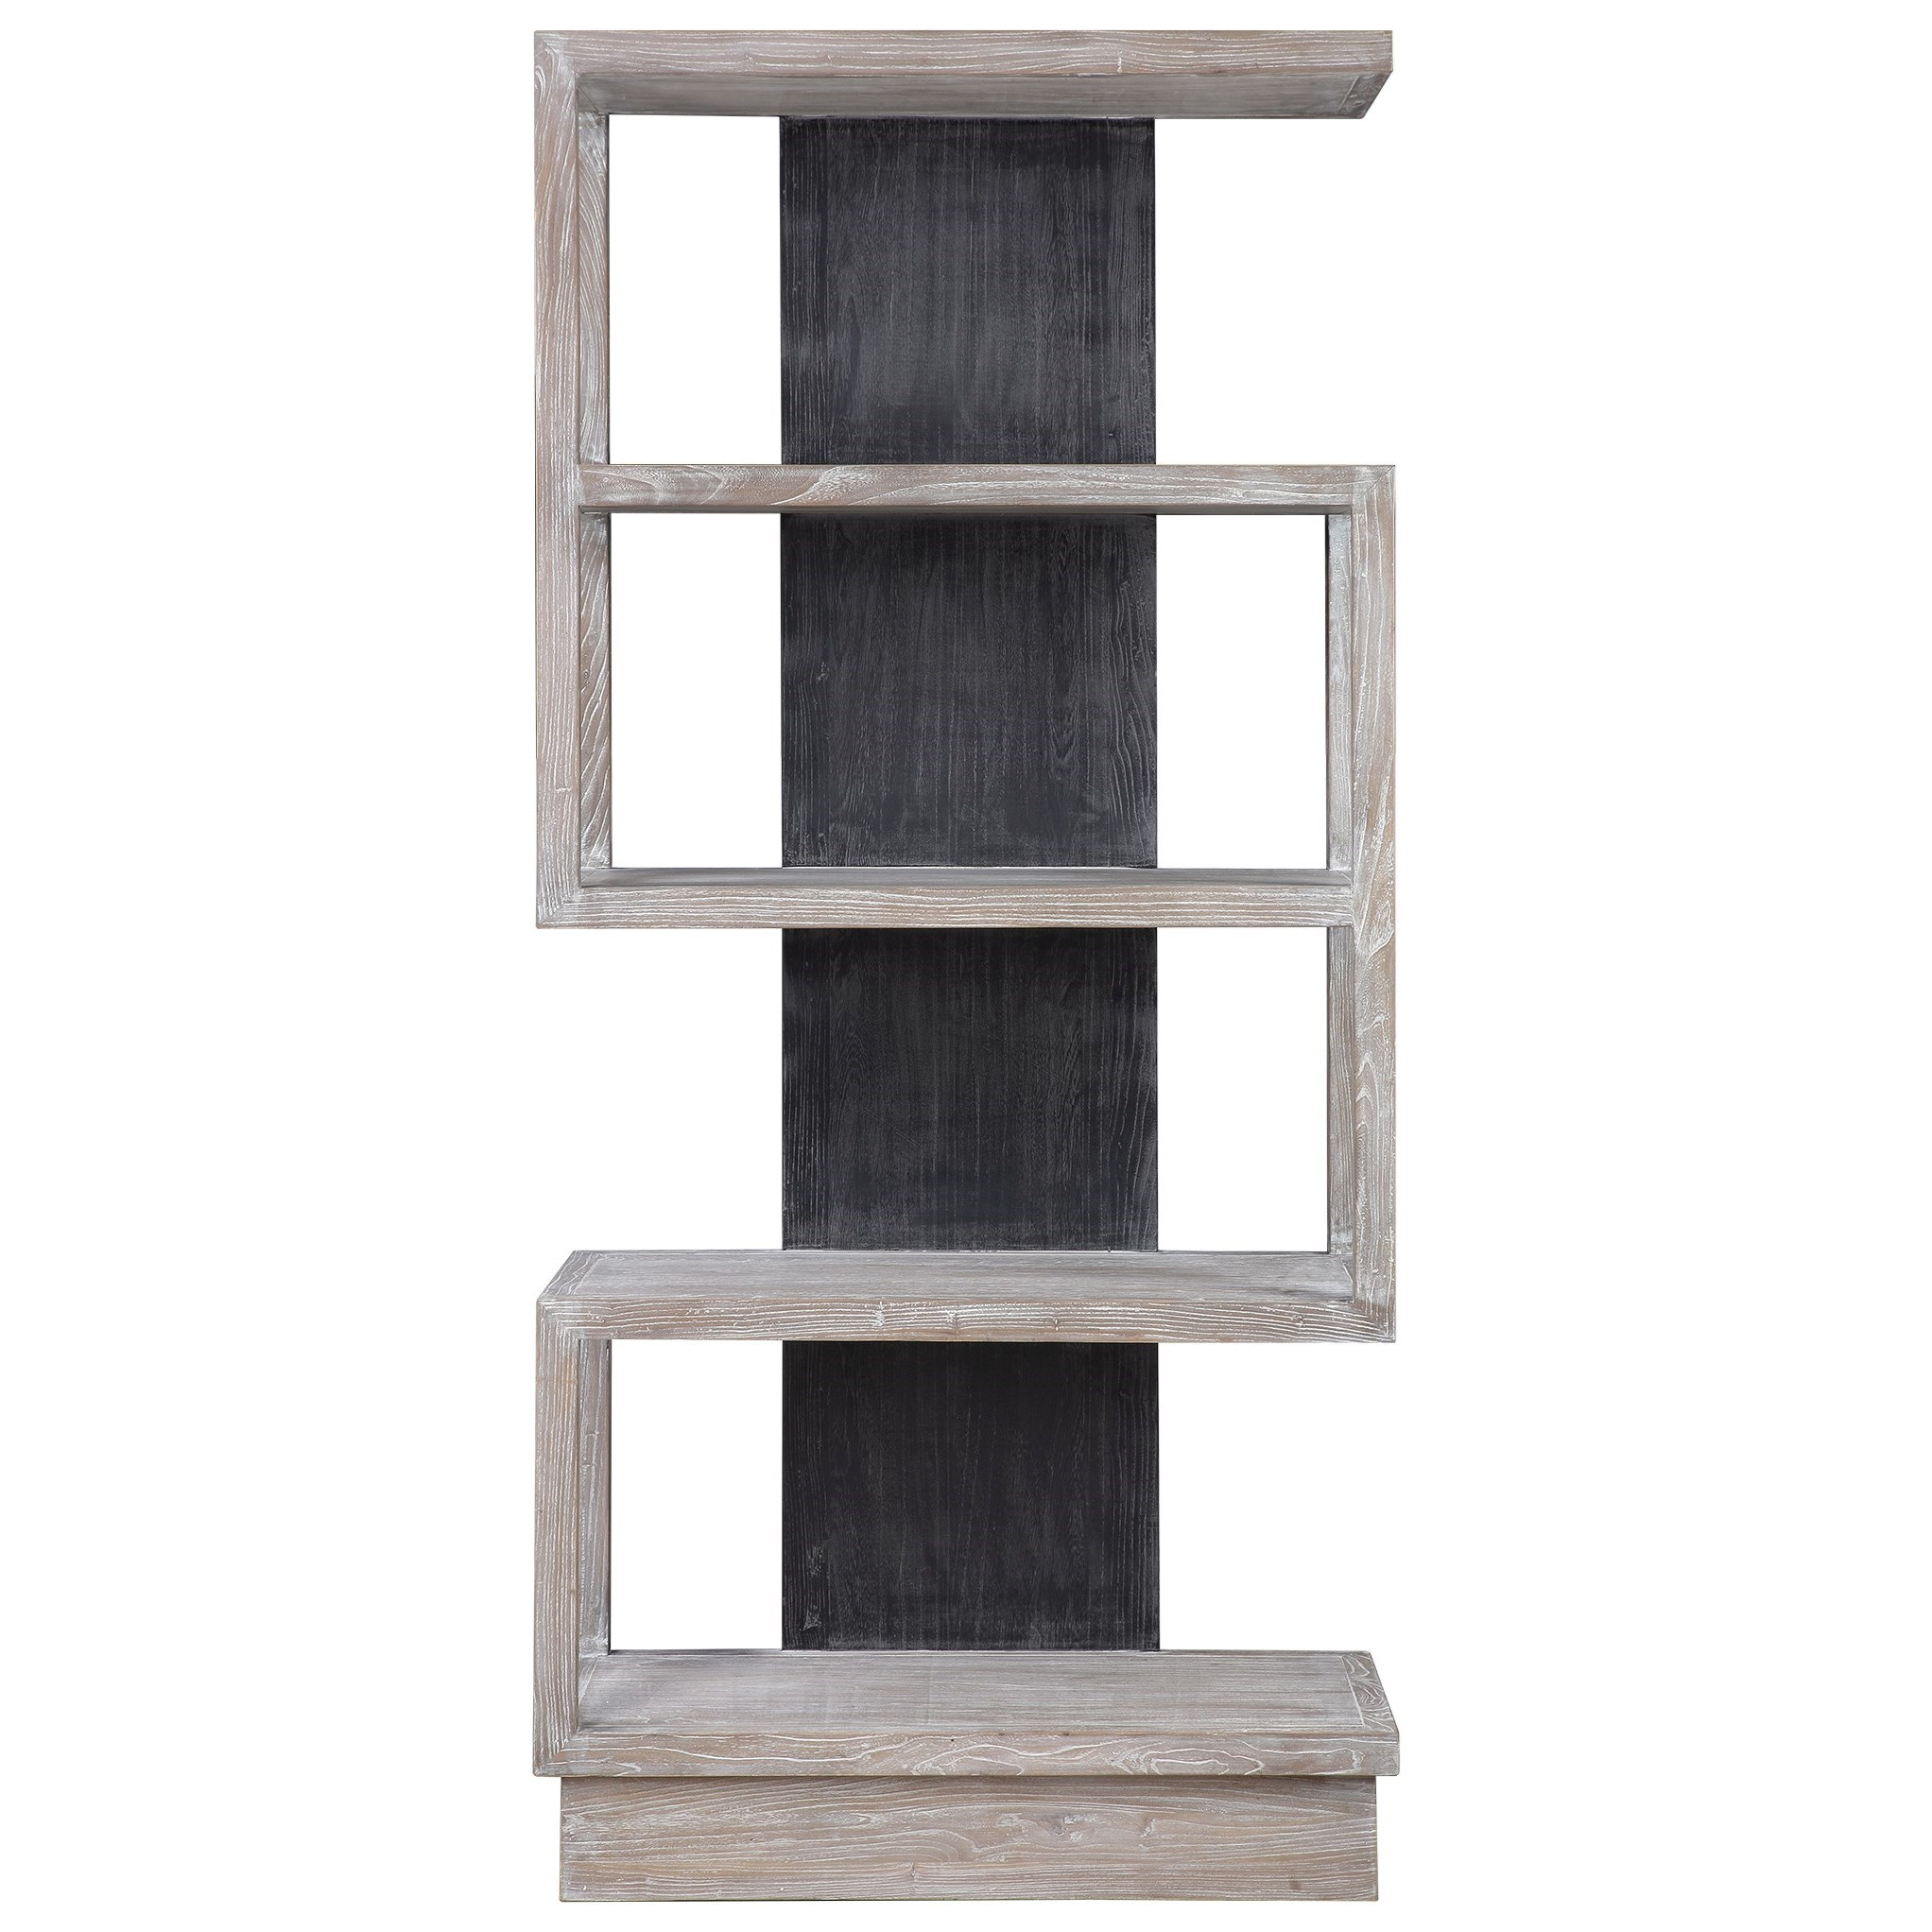 Accent Furniture - Bookcases Nicasia Modern Etagere by Uttermost at Dunk & Bright Furniture